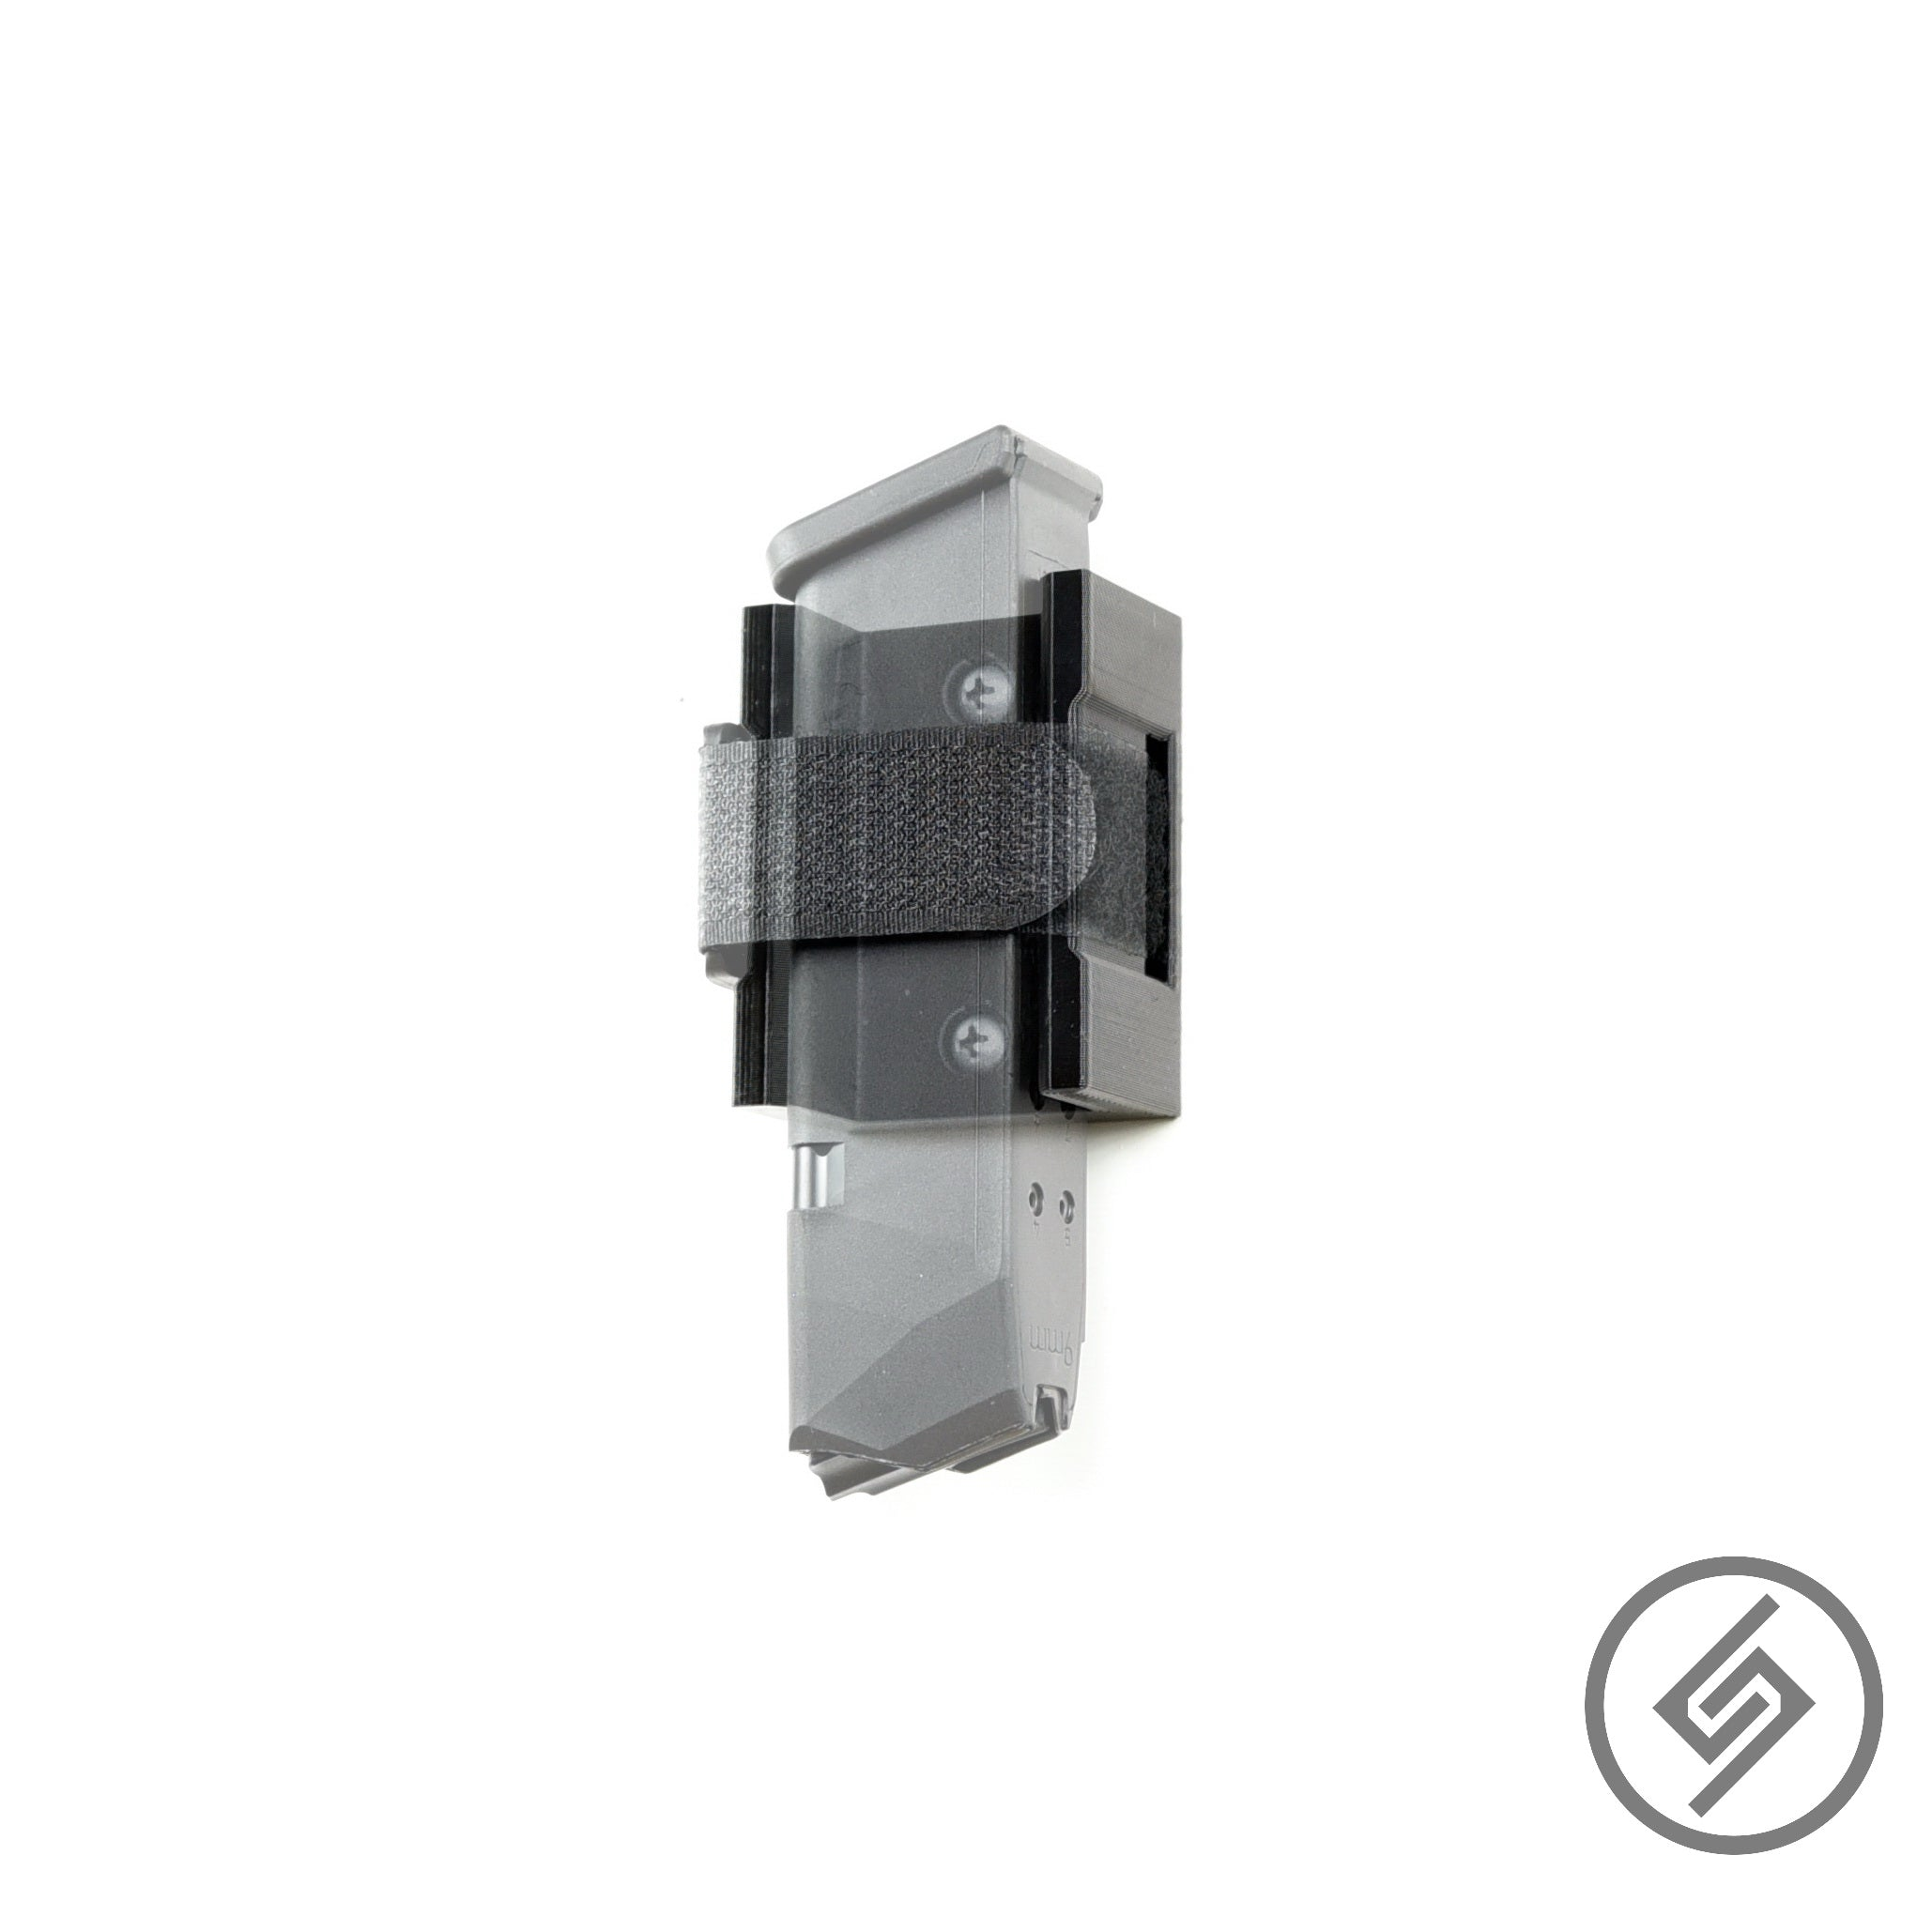 Velcro Wall Mount for Glock Magazine, Transparent, Spartan Mounts